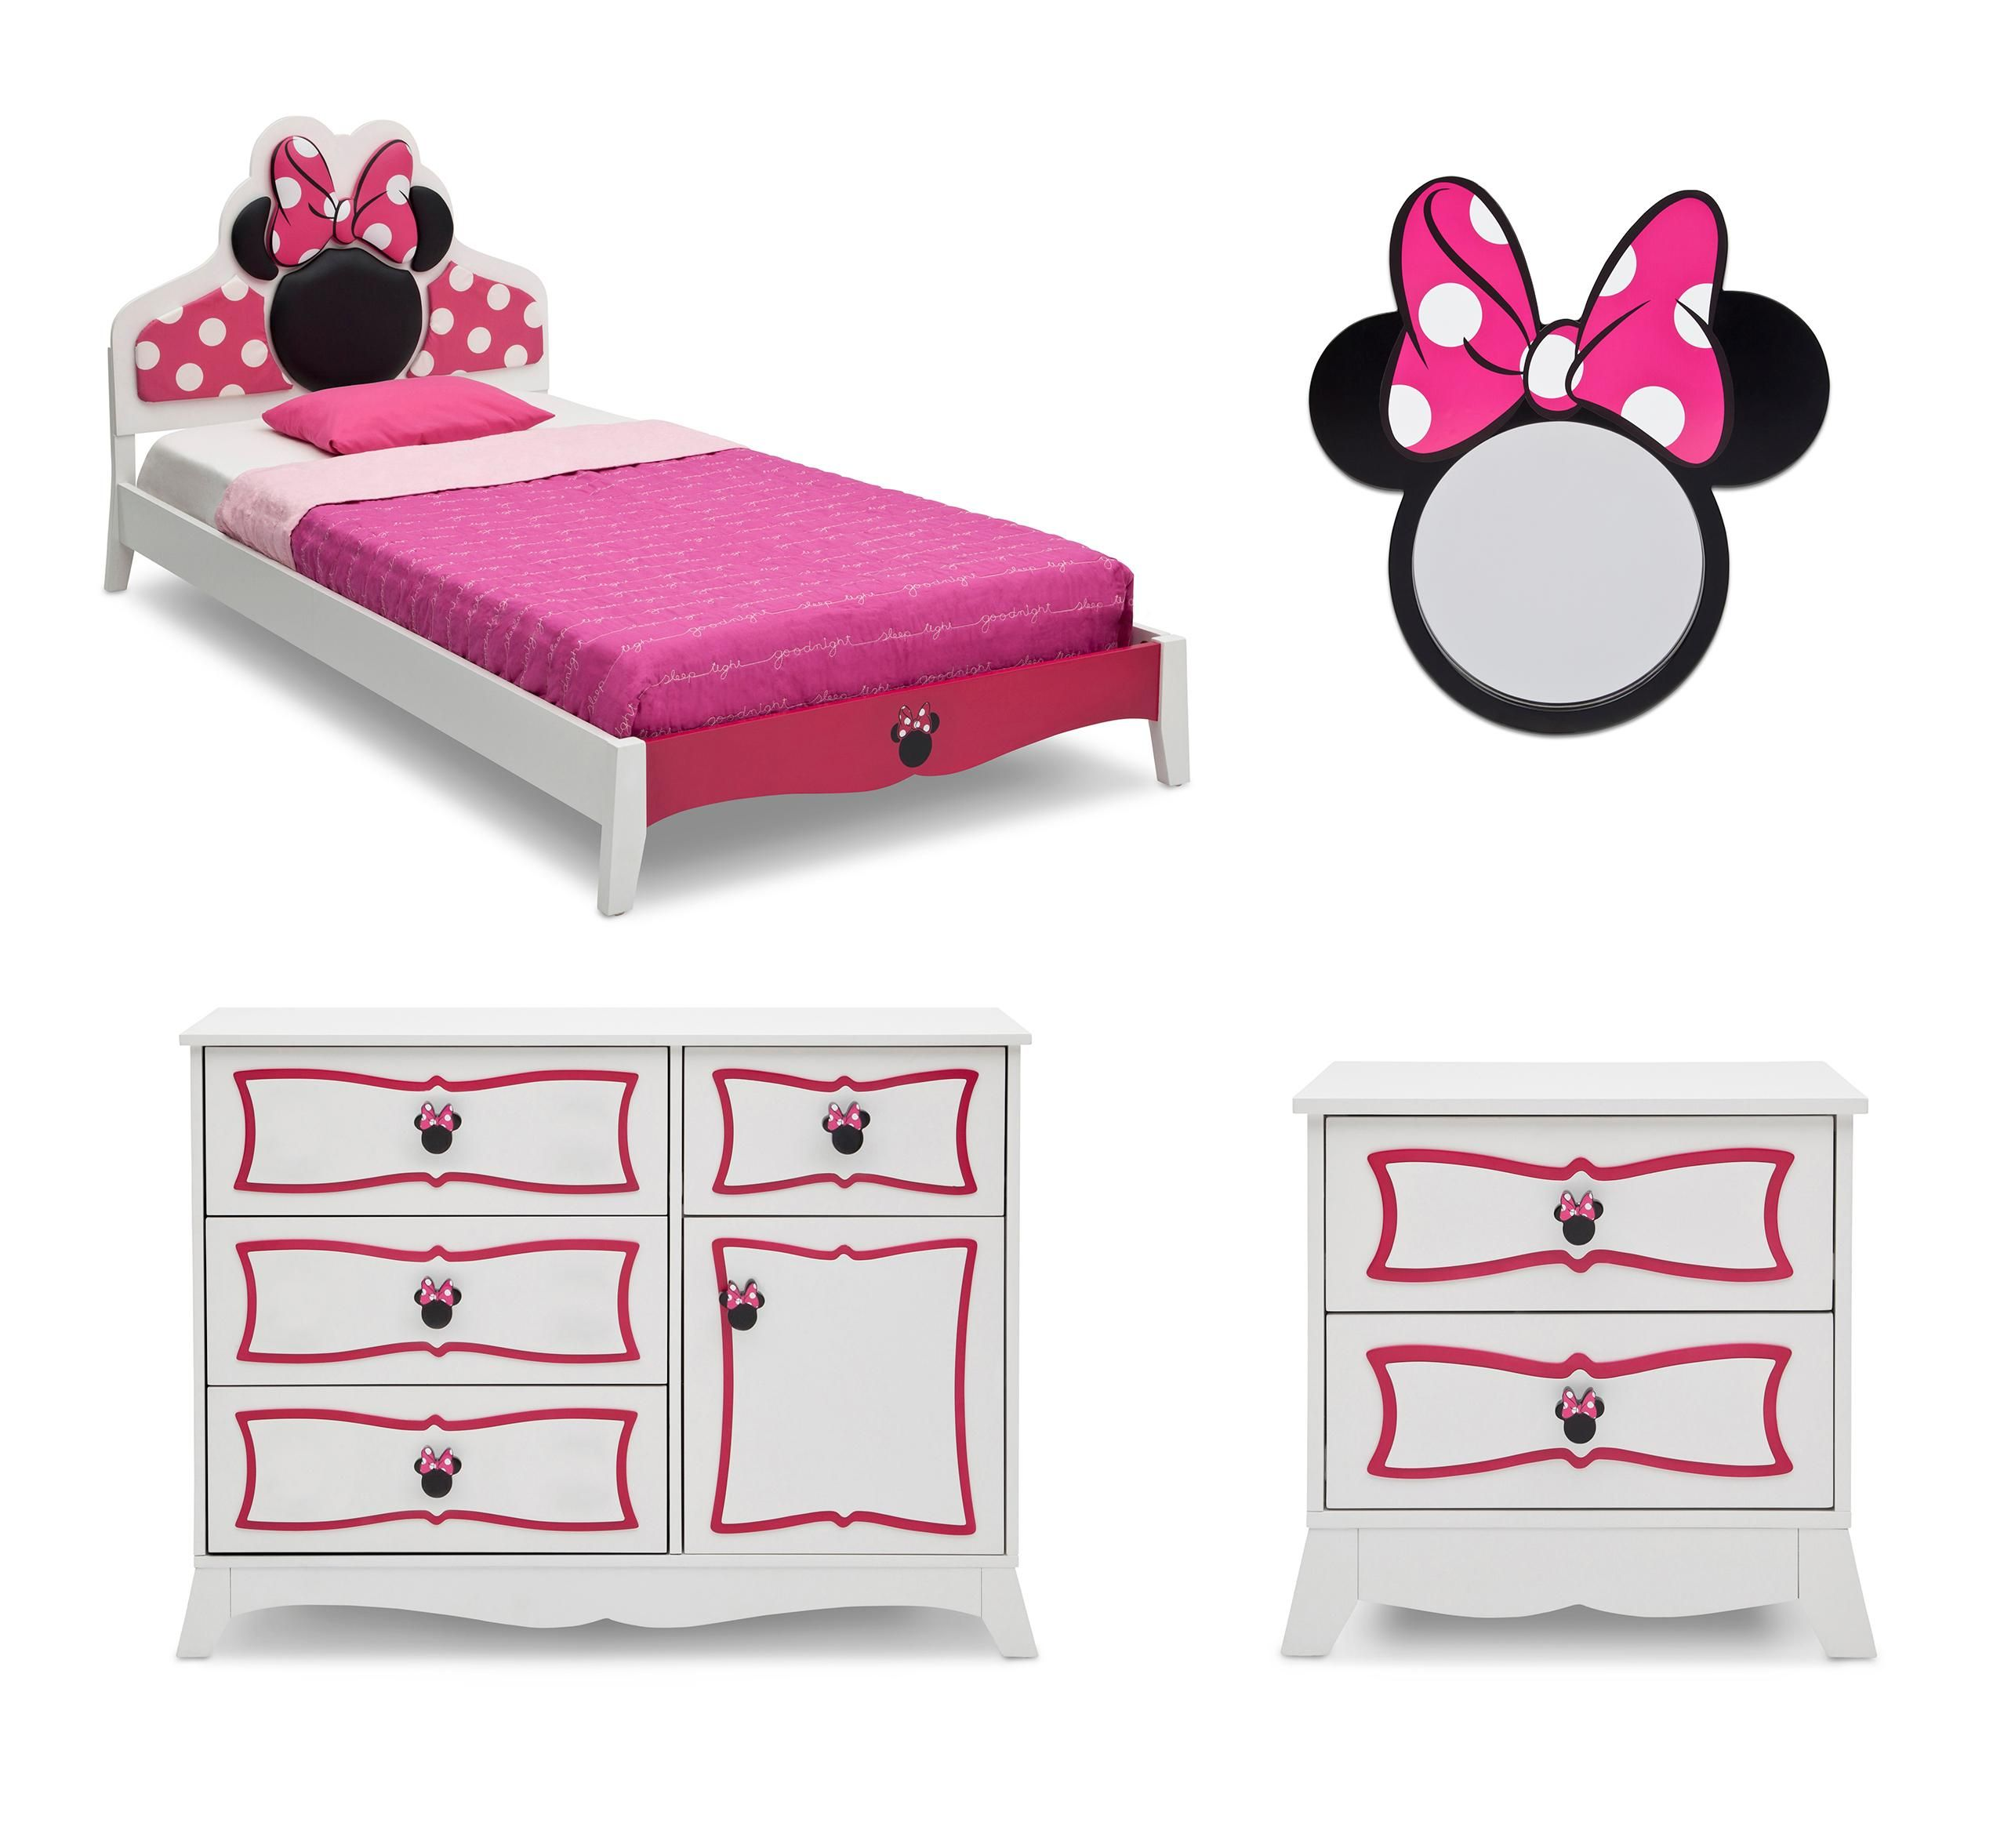 Minnie Mouse Disney Bedroom Set Twin Bed Kids Furniture